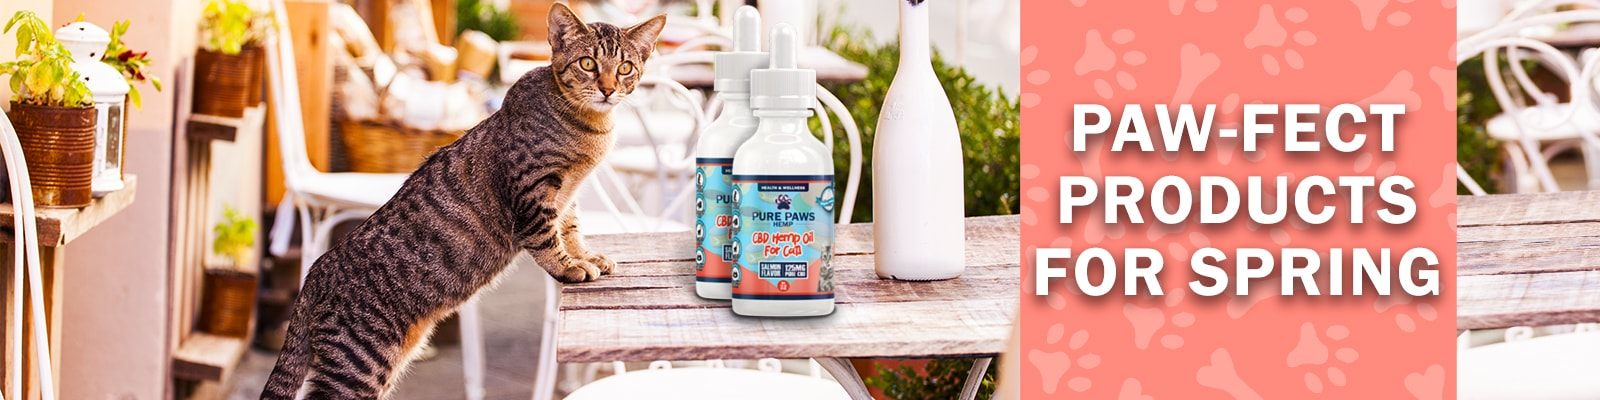 Pure Paws Hemp Products for Cats and Dogs